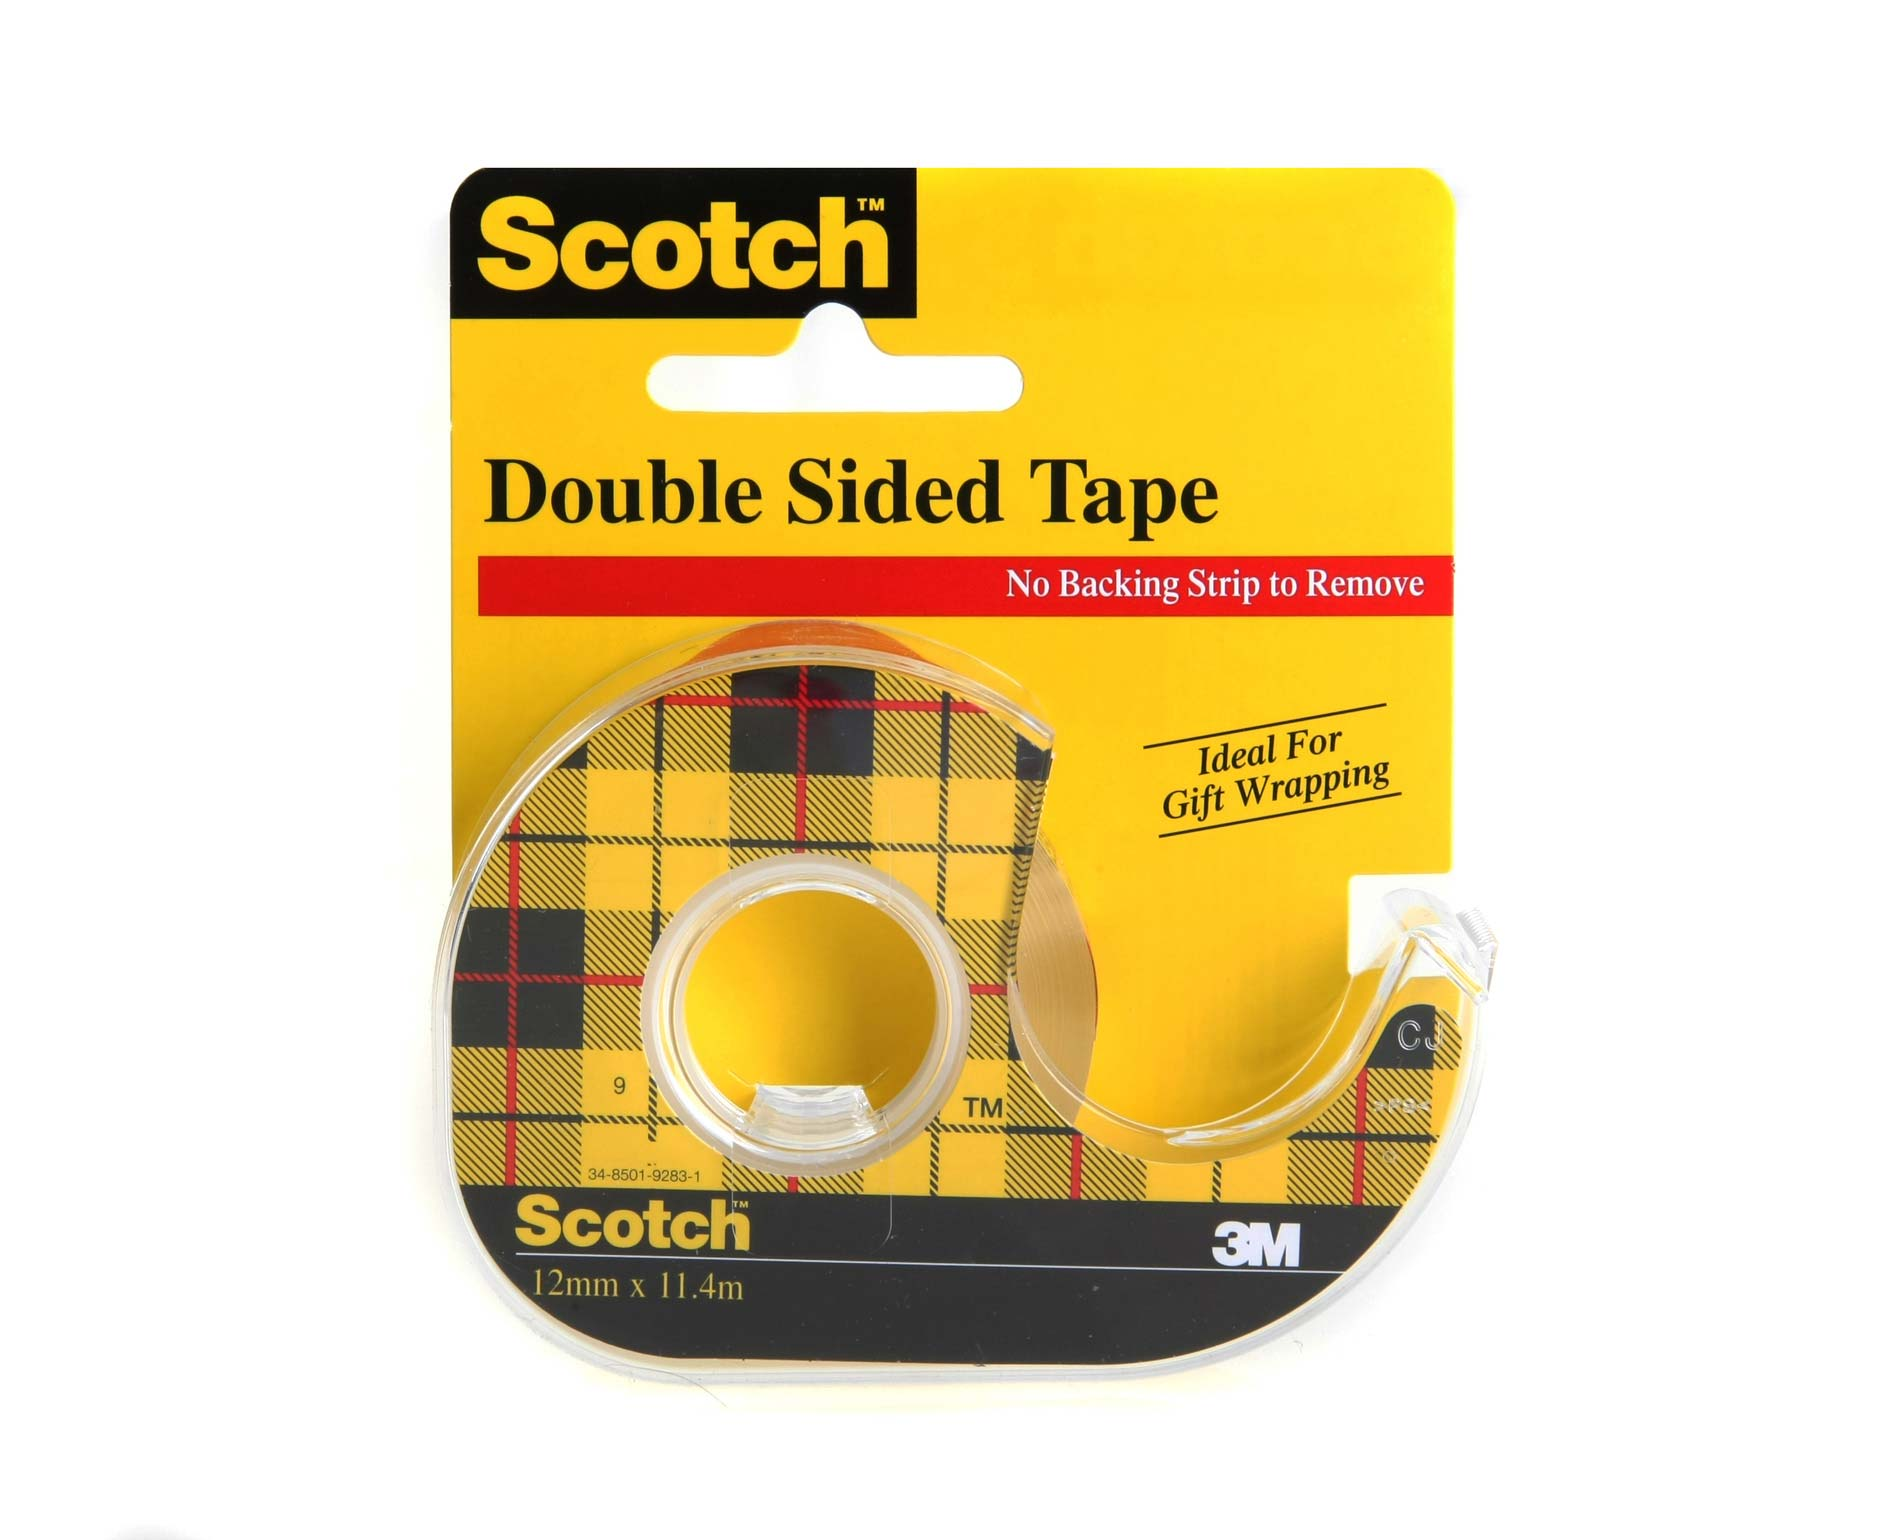 Image of 3M Scotch Double Sided Tape 12mm x 11.4m with Dispenser, Clear